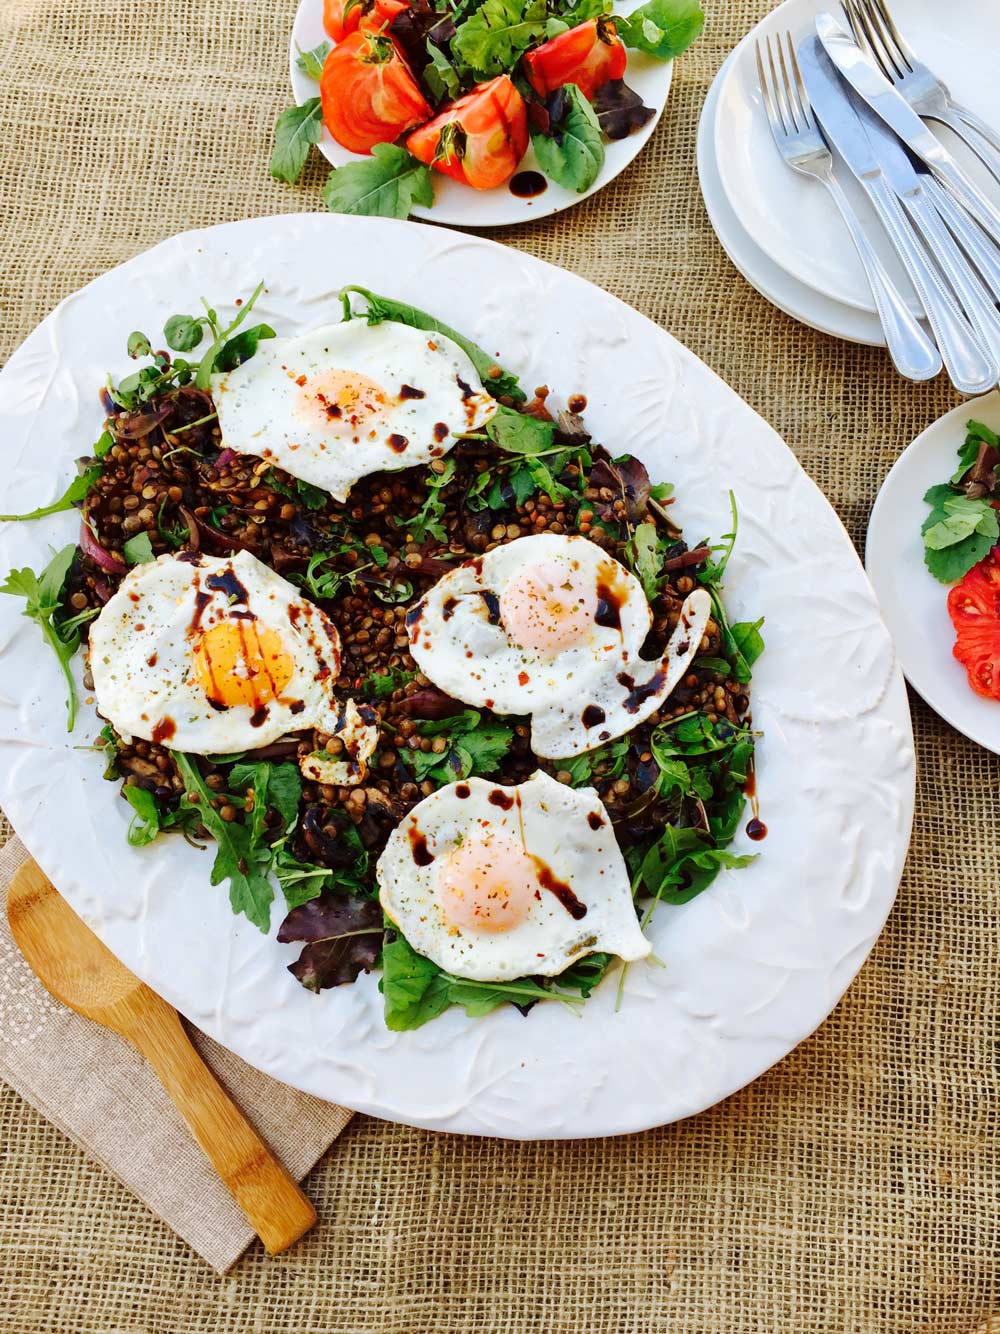 Brown and green lentils with portobello mushrooms, wasabi rocket and watercress hearty salad